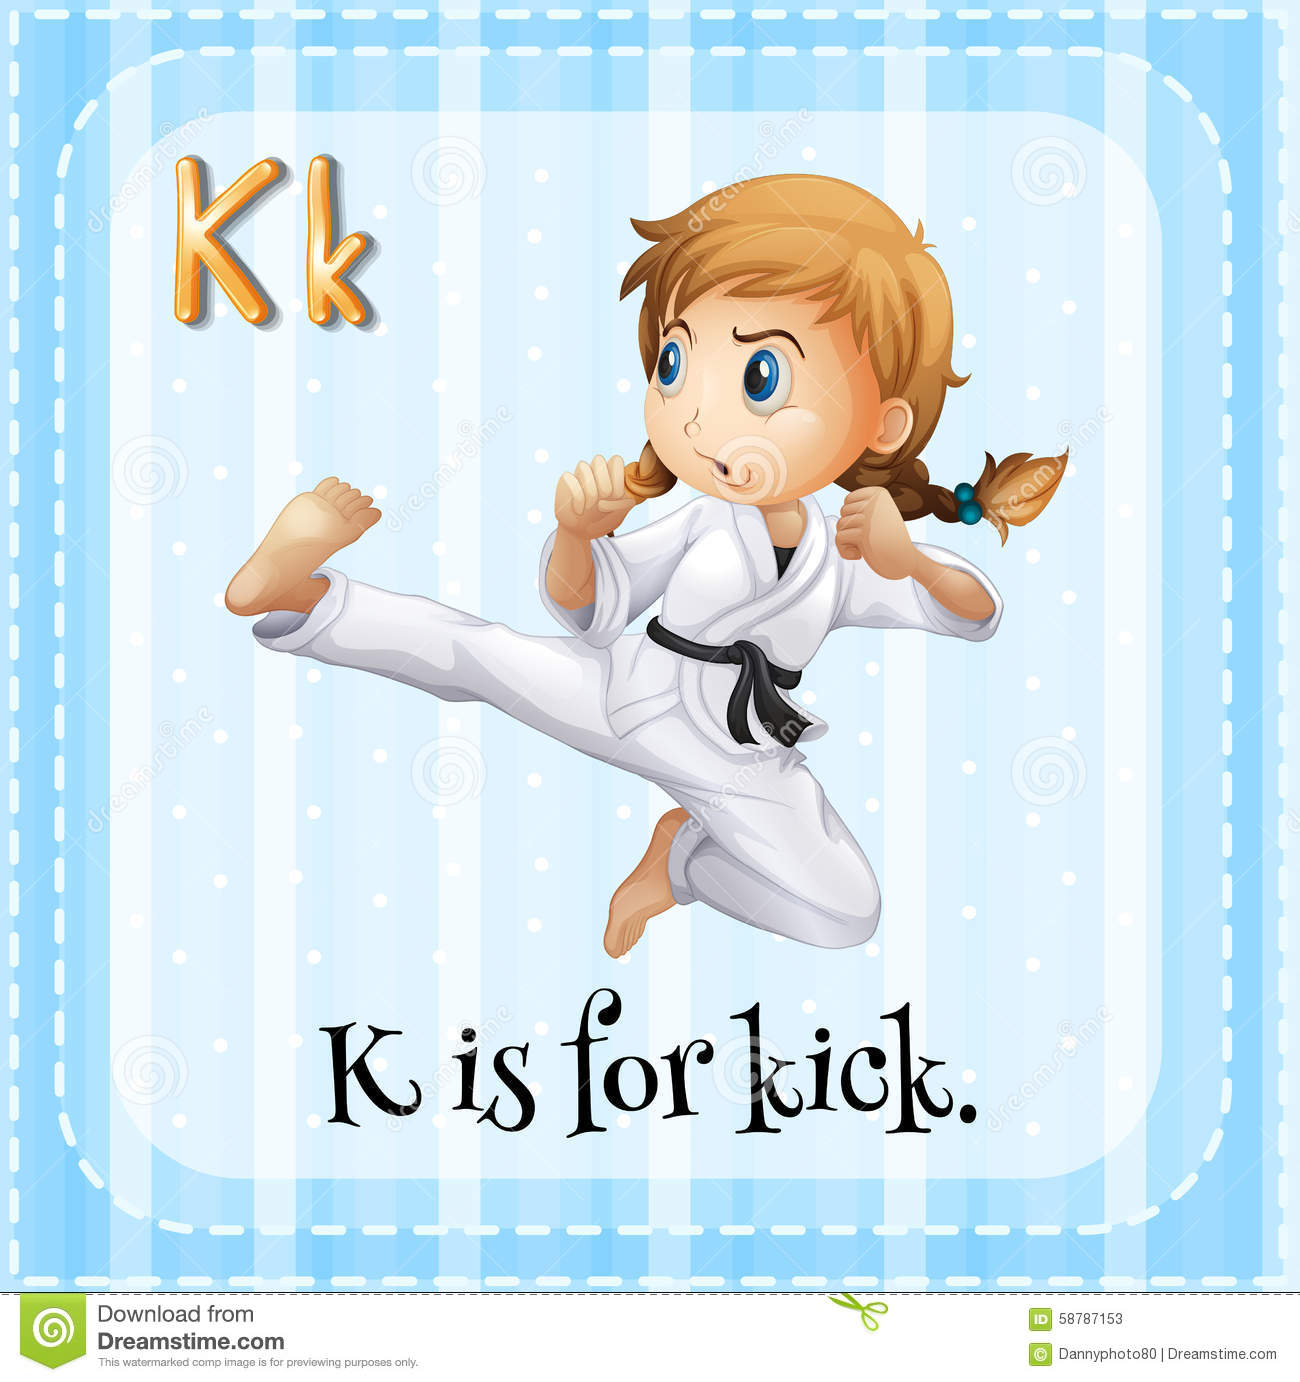 Letter K For Key Kick And Kookaburra Vector Illustration